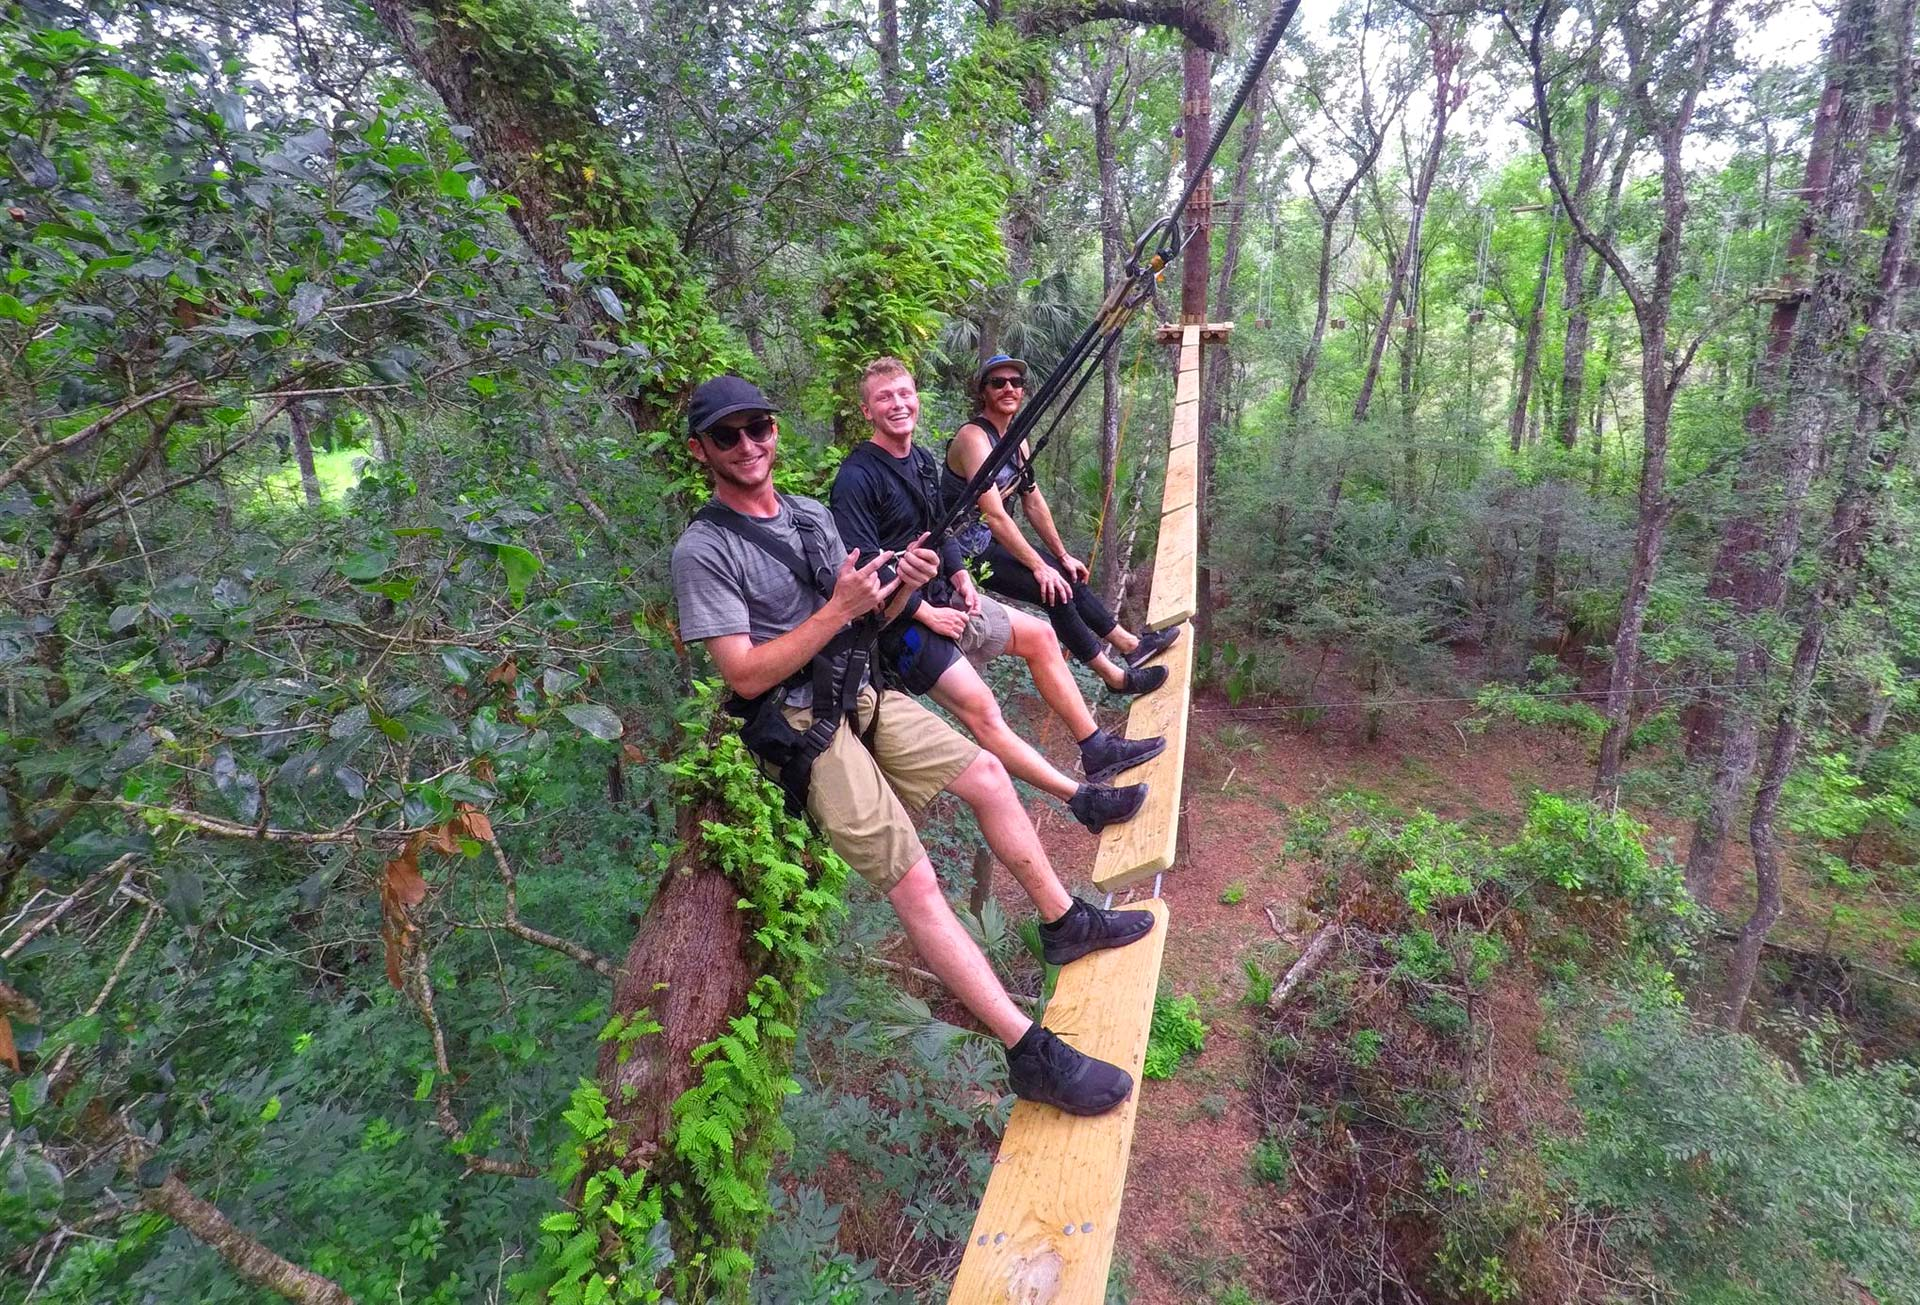 Tampa-Area Extreme Sports Guide - Extreme sports are recreational activities characterized by a higher degree of risk and uncertainty than regular athletic events.Read...